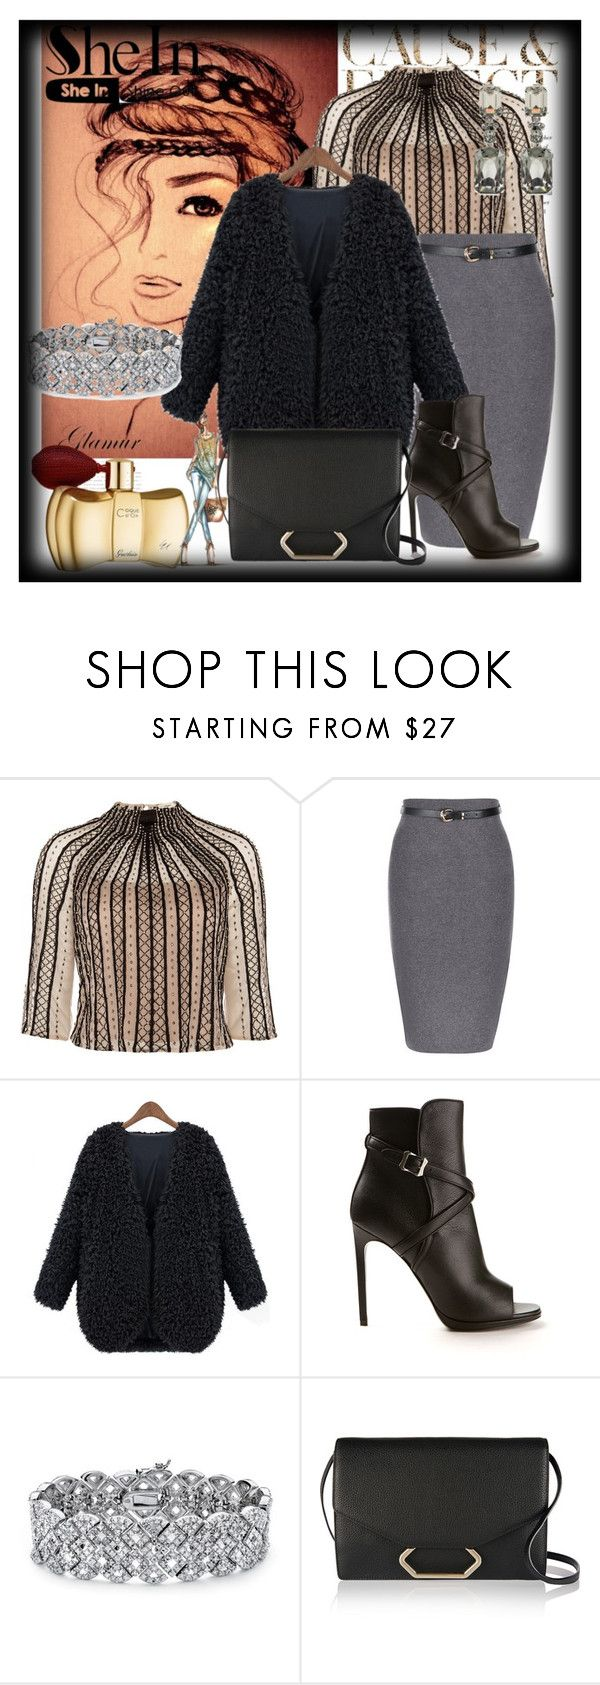 """""""Black V Neck Coat -Sheln"""" by suadapolyvore ❤ liked on Polyvore featuring Envi, Temperley London, Yves Saint Laurent, Palm Beach Jewelry, Victoria Beckham, Oscar de la Renta, StreetStyle, contest, StreetChic and shein"""